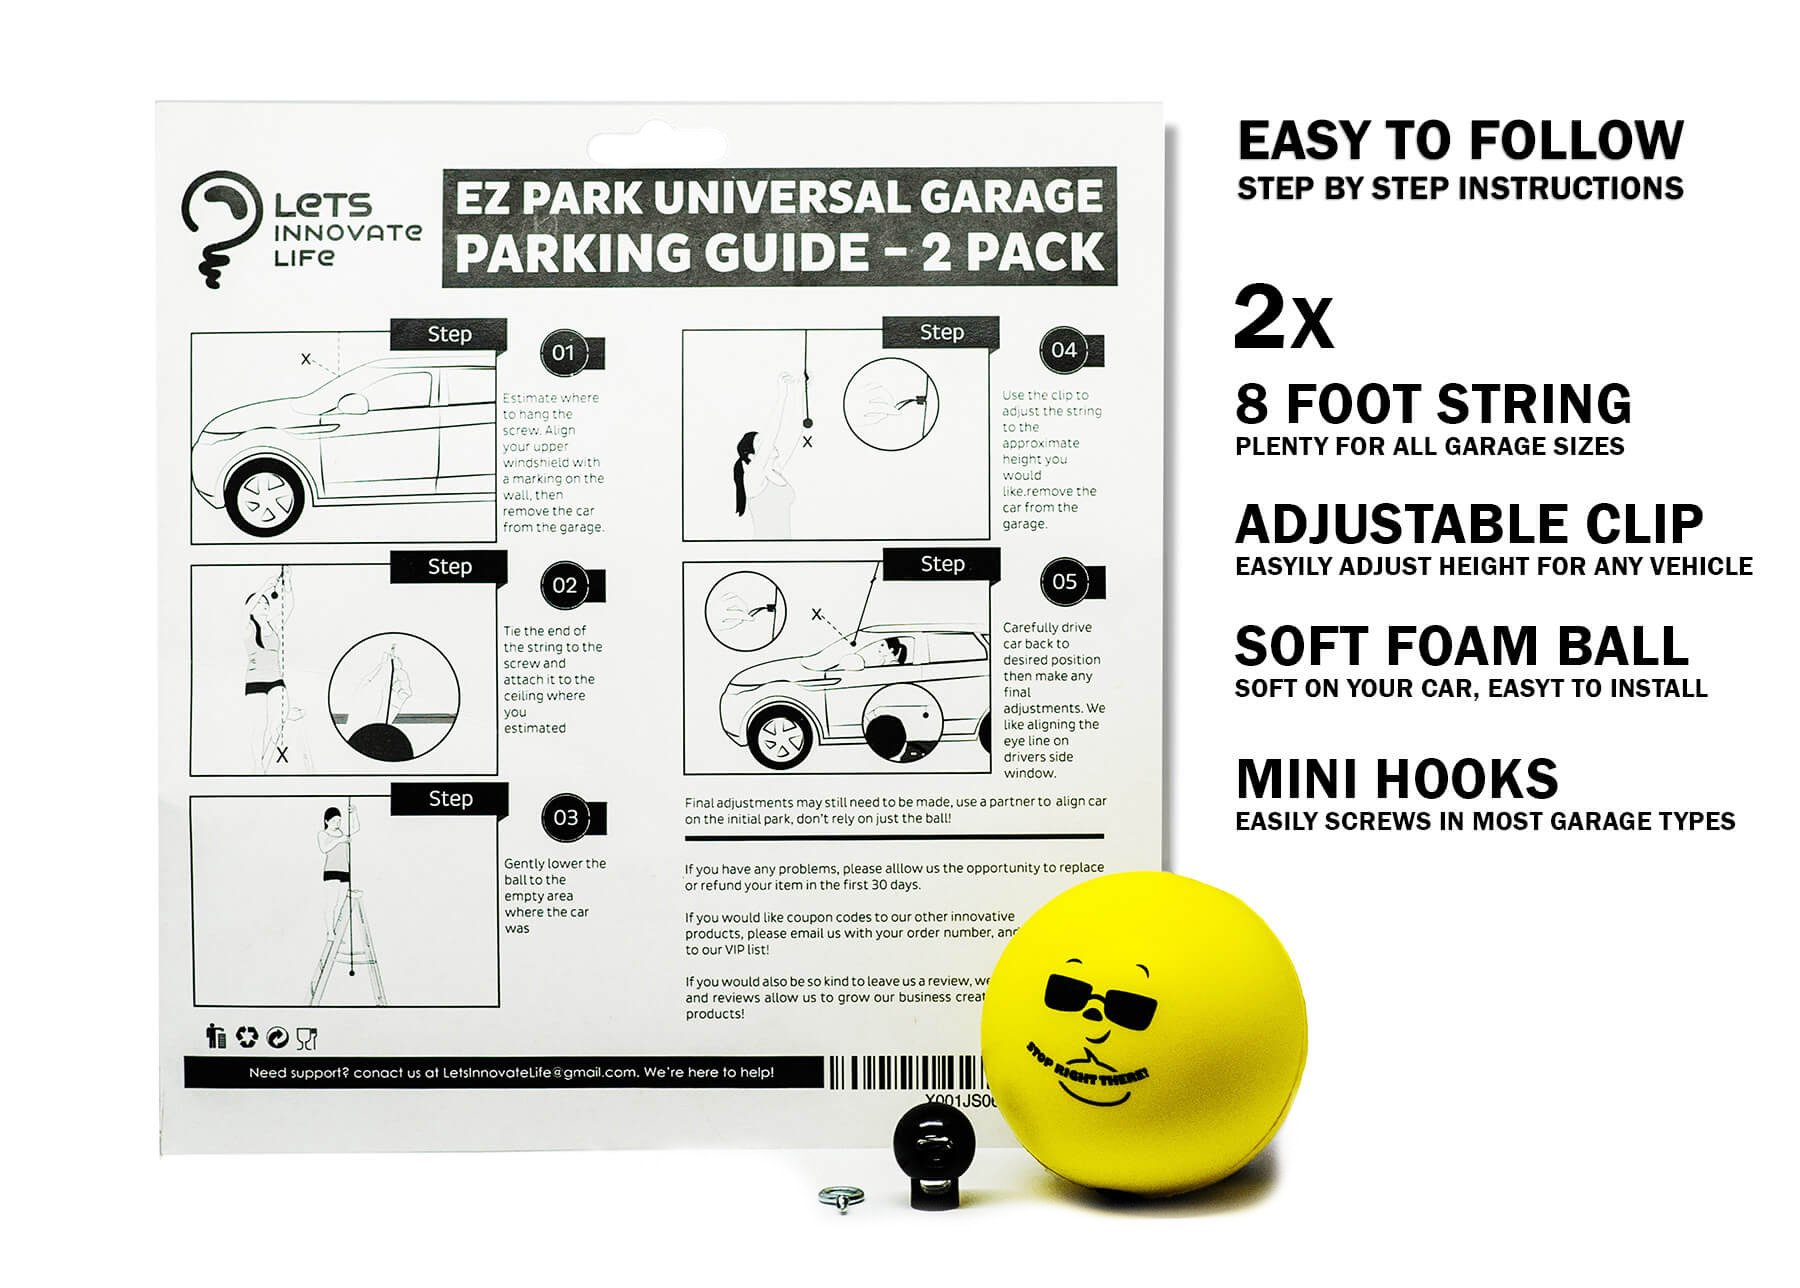 Double Garage Parking Aid - Ball Guide System. Simple to install adjustable parking assistant kit includes a retracting ball sensor assist solution. Perfect Garage Car Stop Indicator for all Vehicles by LetsInnovateLife (Image #2)